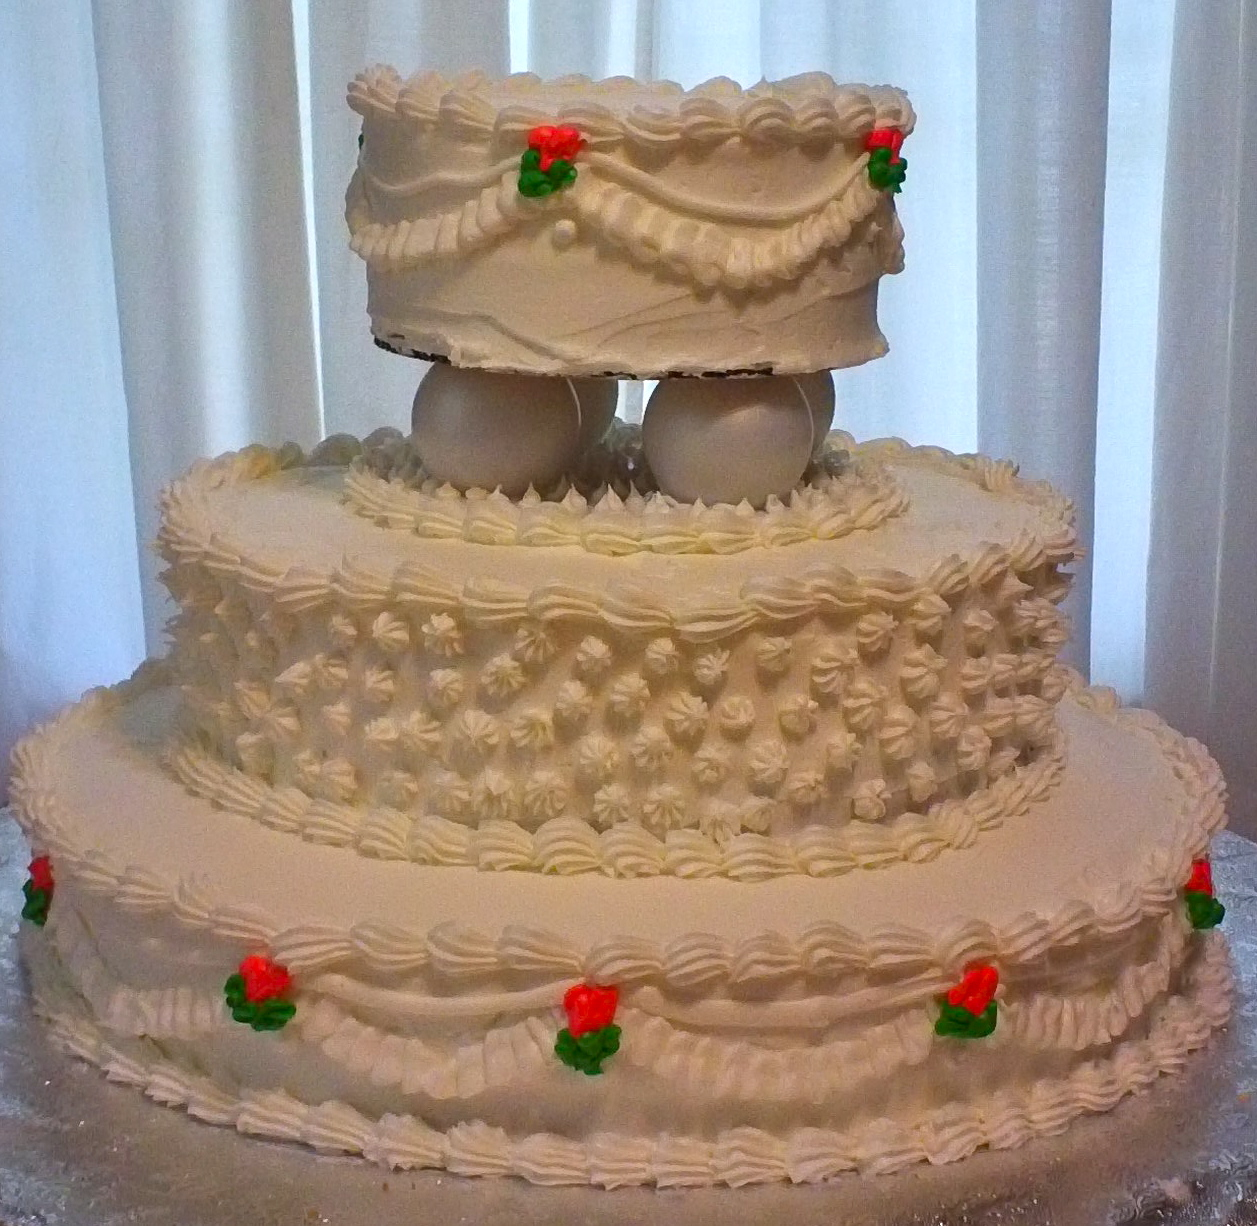 Debbie's Little Cakes: 15 Year Vow Renewal